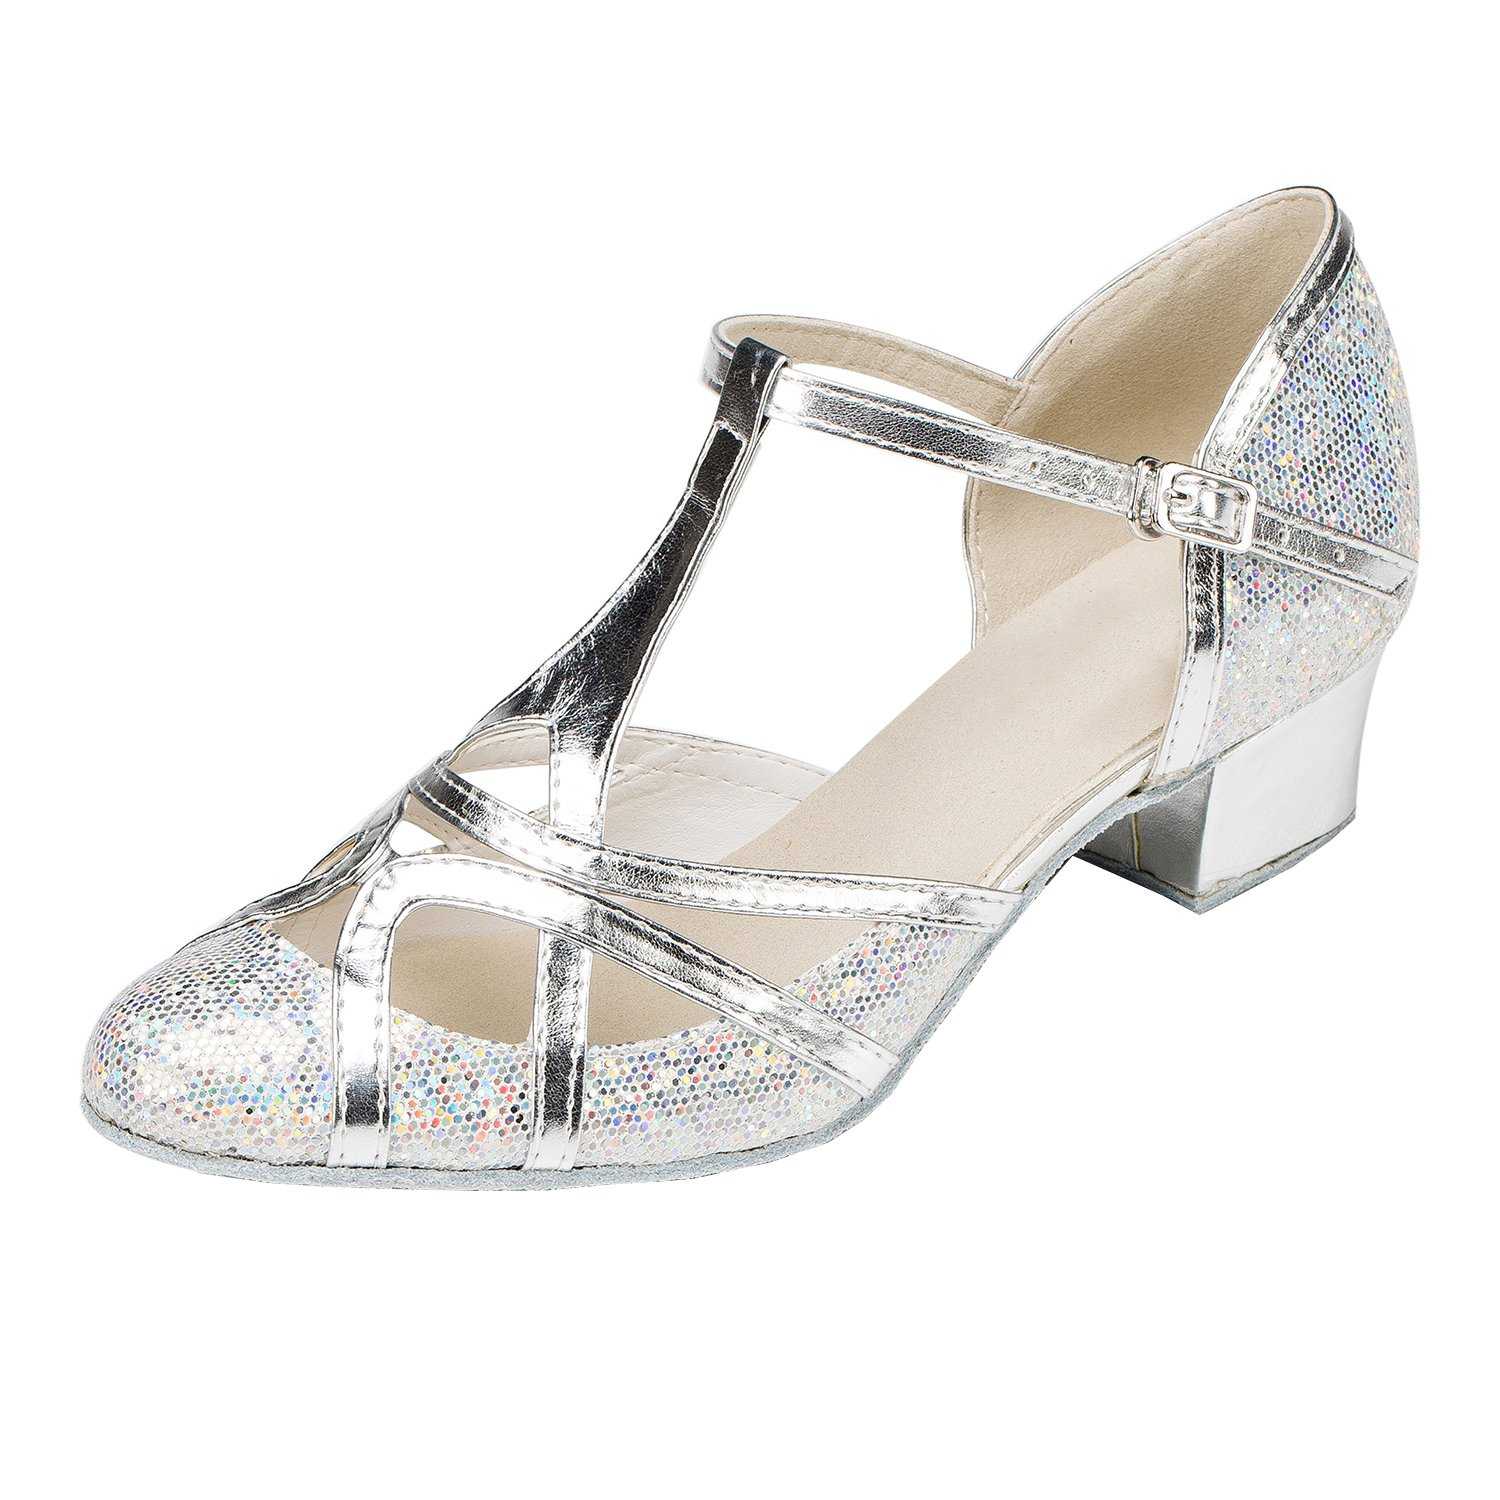 1920s Style Shoes Minitoo Womens T-strap Glitter Salsa Tango Ballroom Latin Dance Shoes Wedding Pumps $38.00 AT vintagedancer.com